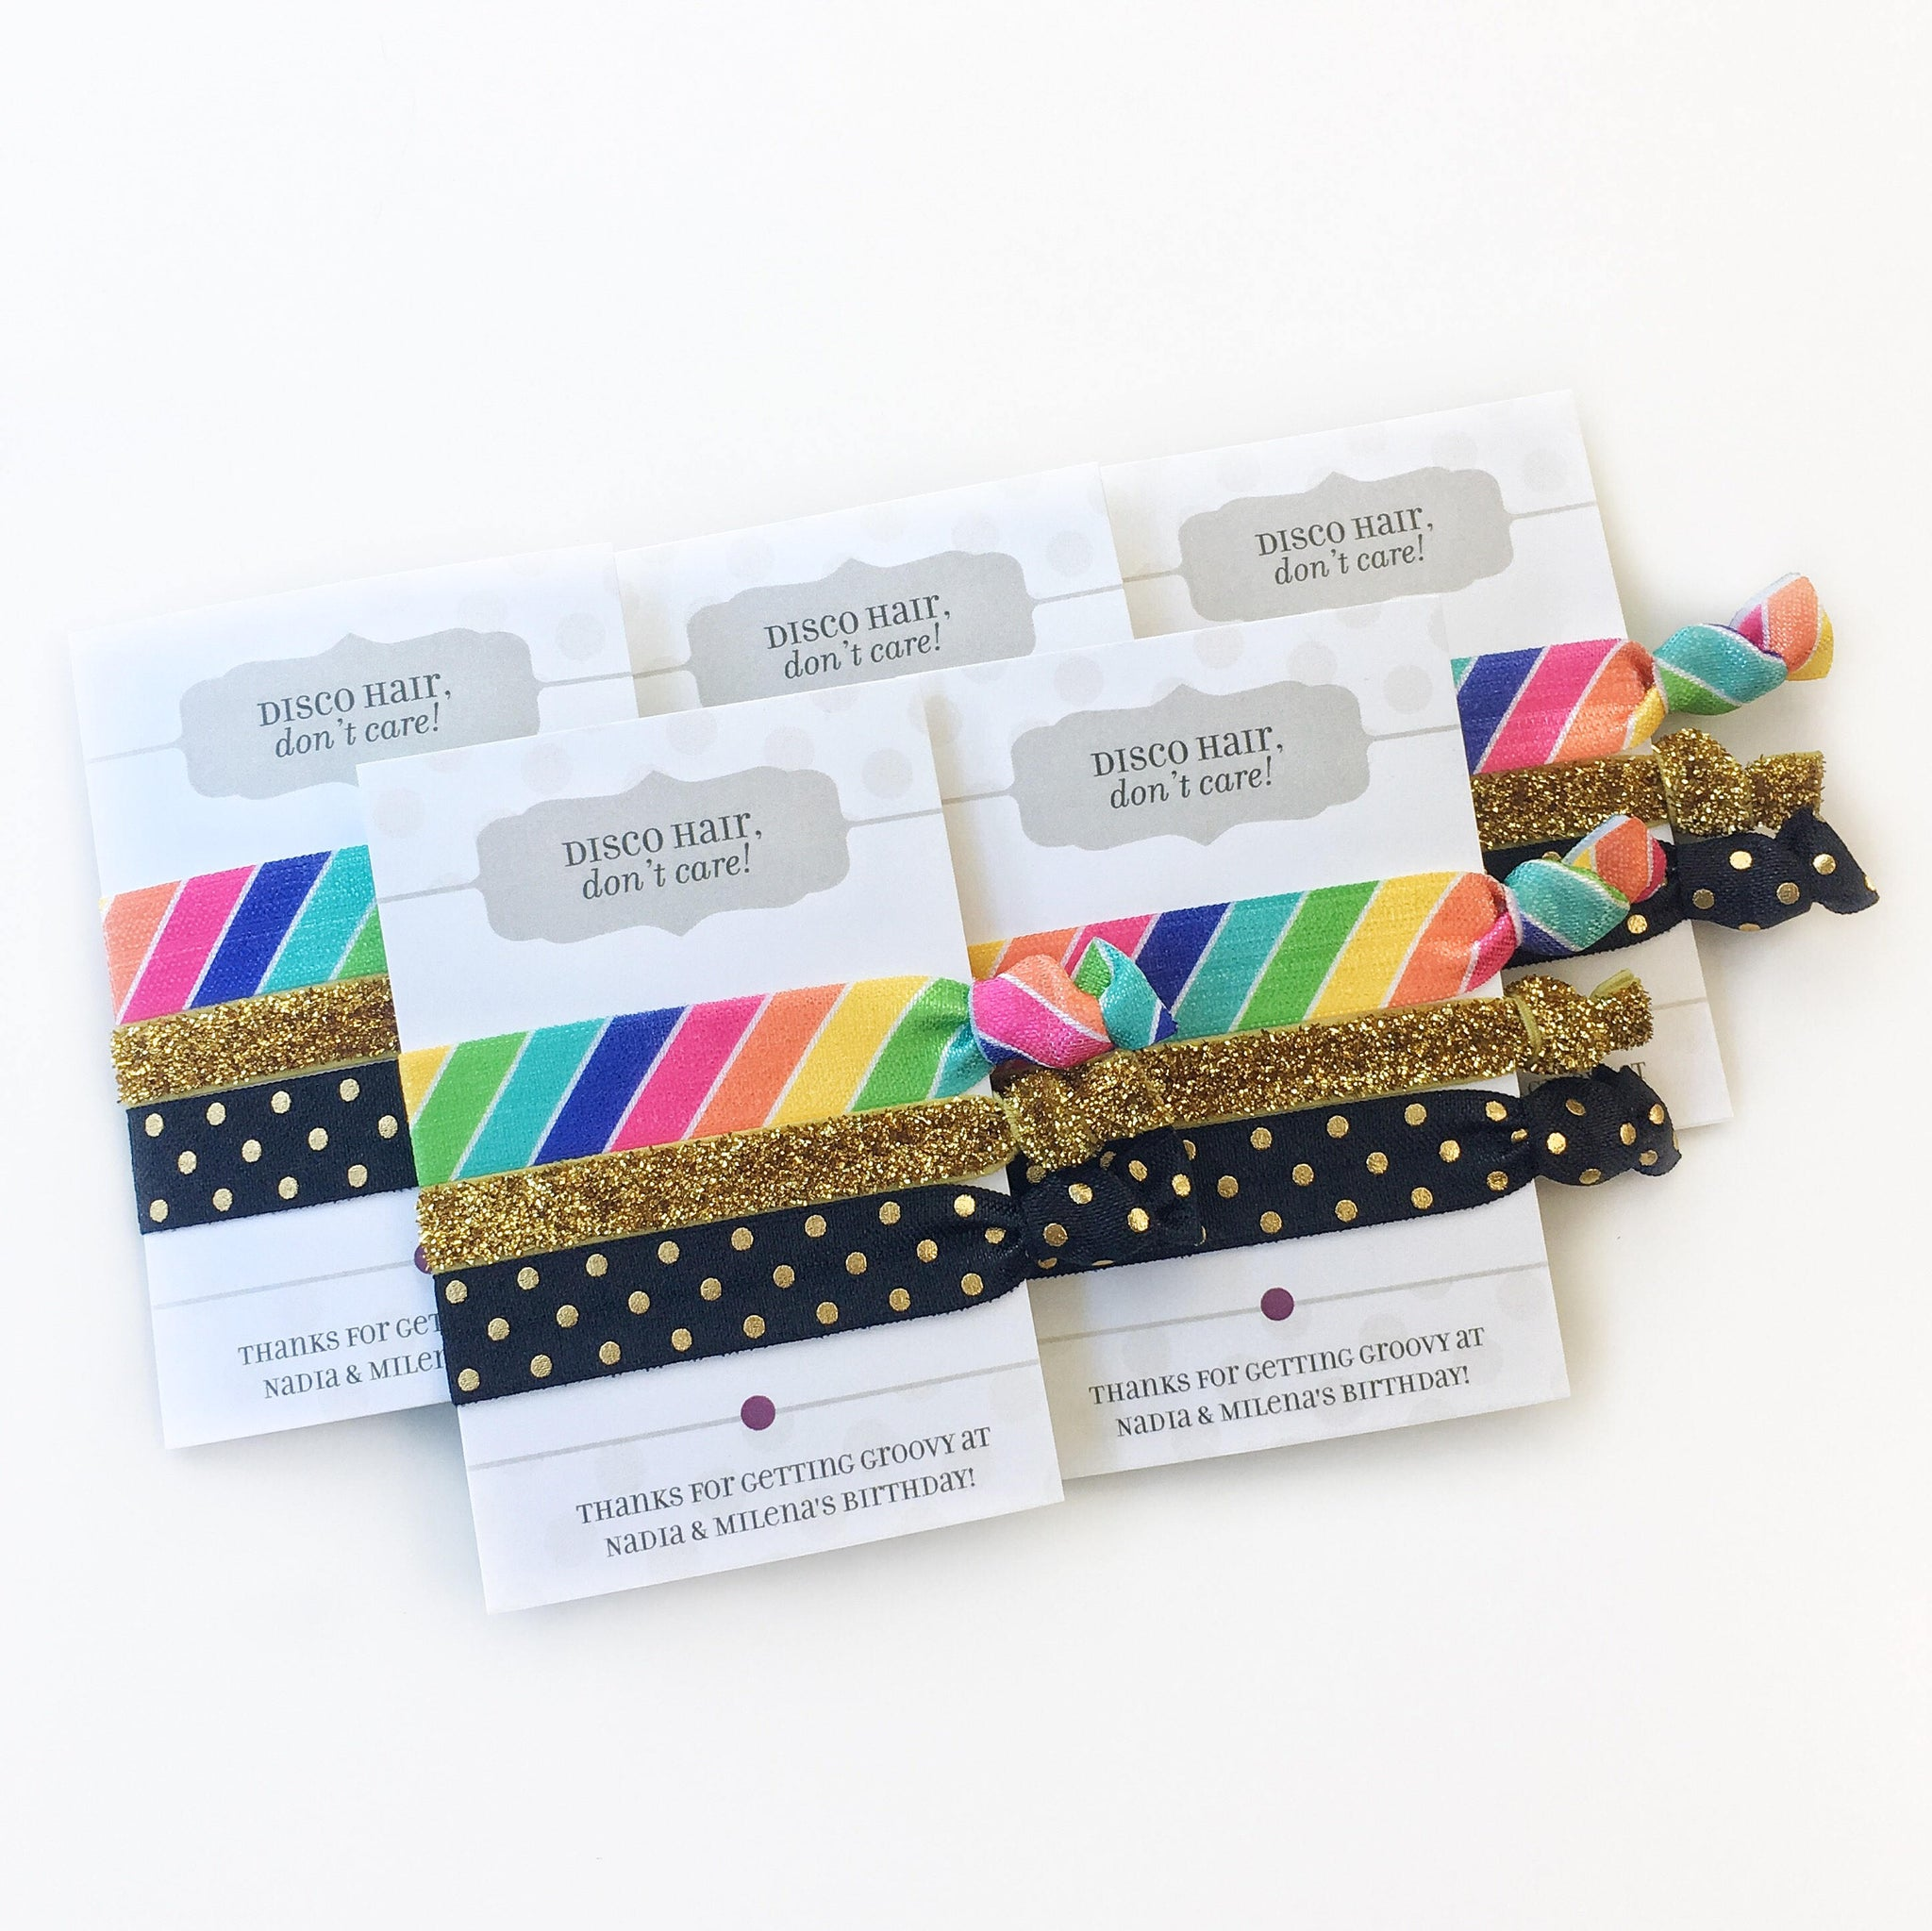 Rainbow Disco Party Favors - Unique Party Favor Ideas - @PlumPolkaDot